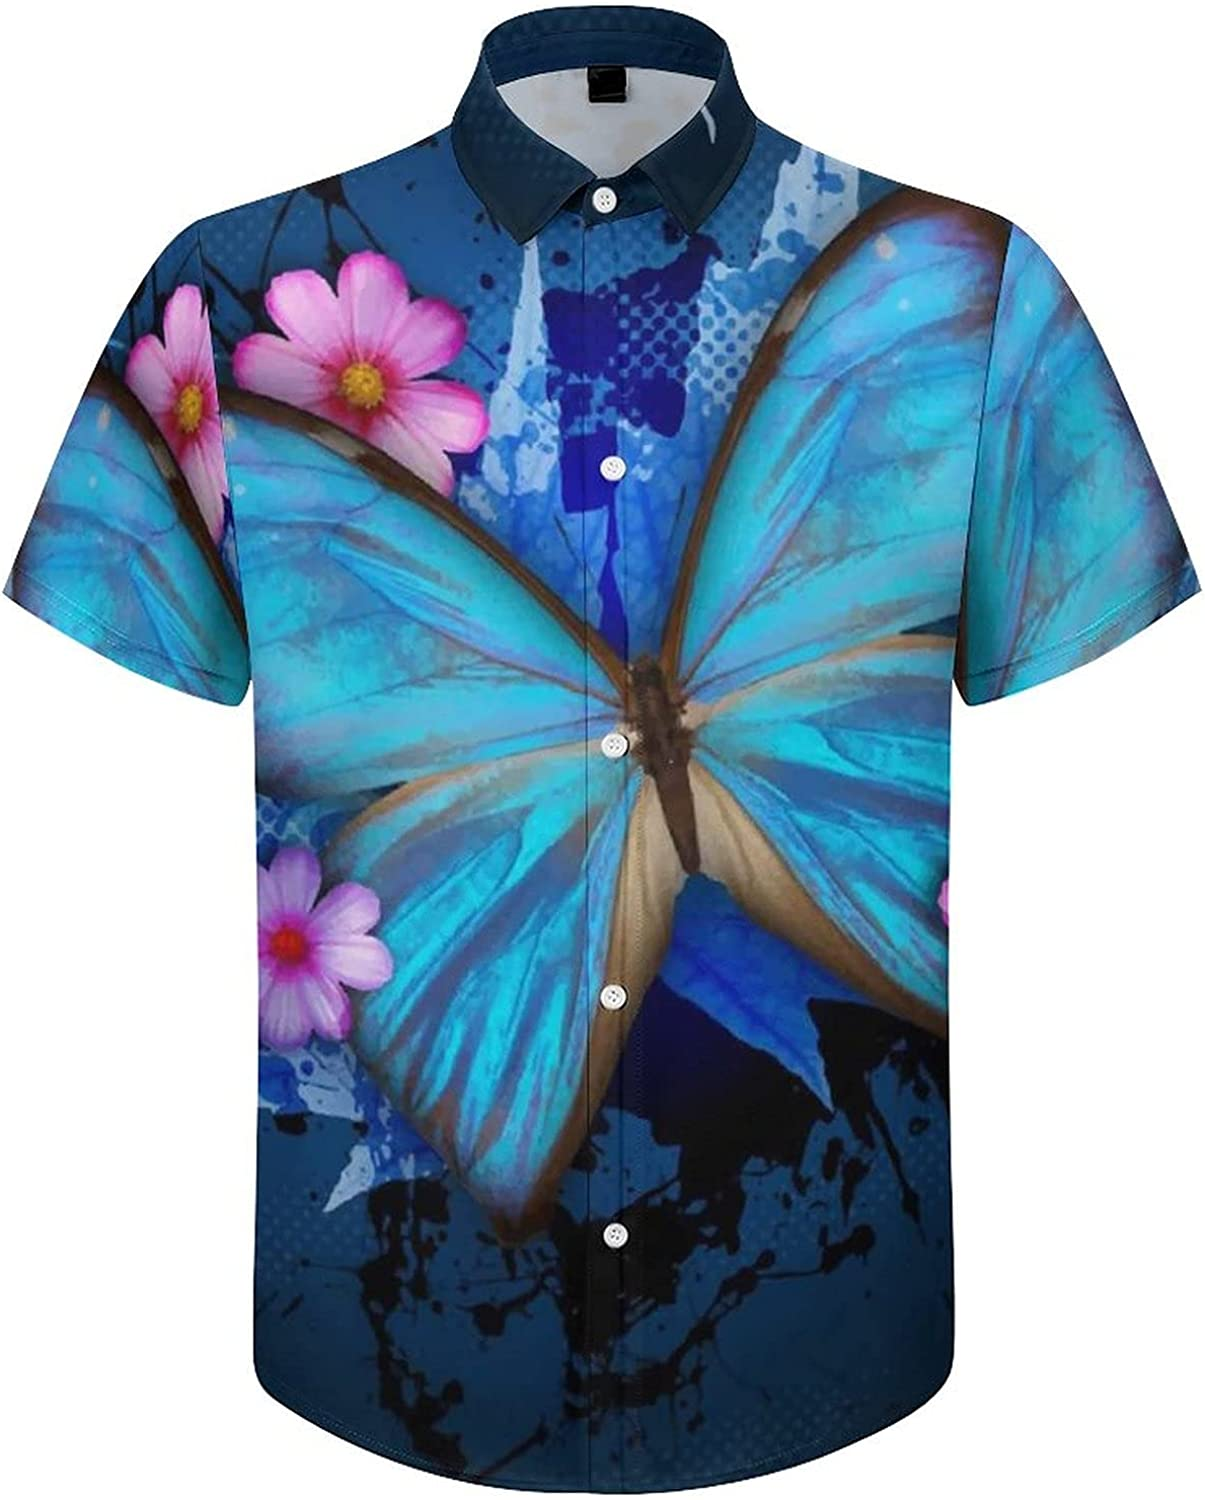 Men's Regular-Fit Short-Sleeve Printed Party Holiday Shirt Blue Butterfly Pink Floral